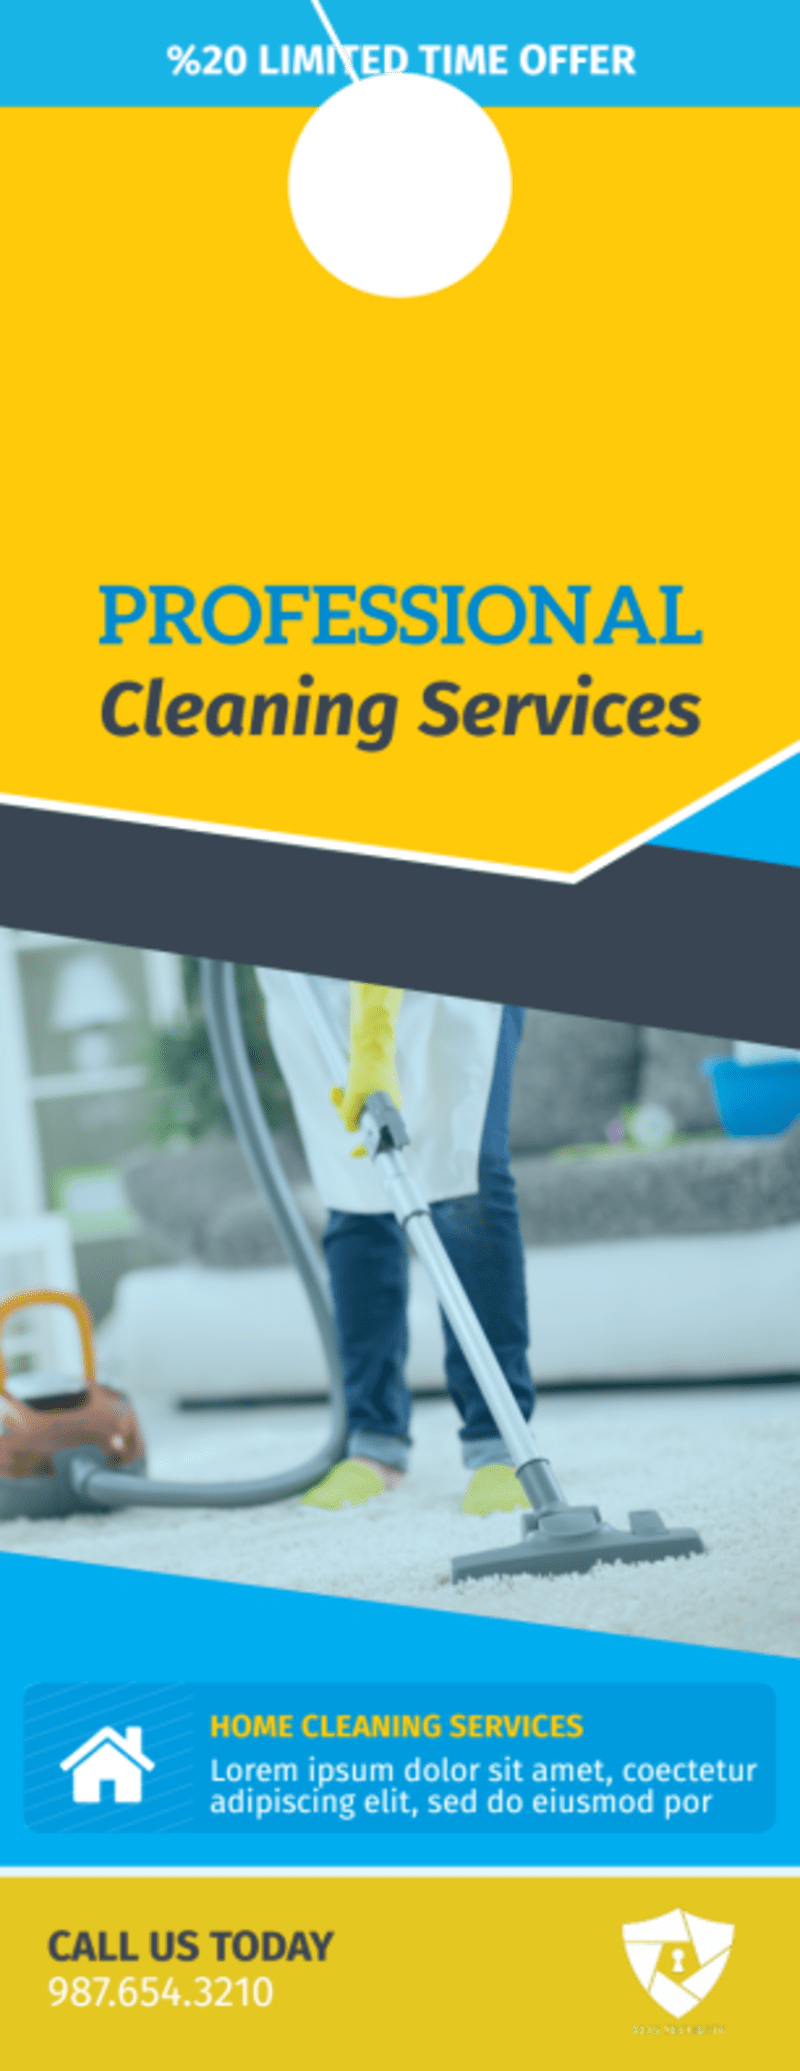 Professional Cleaning Service Door Hanger Template Preview 2